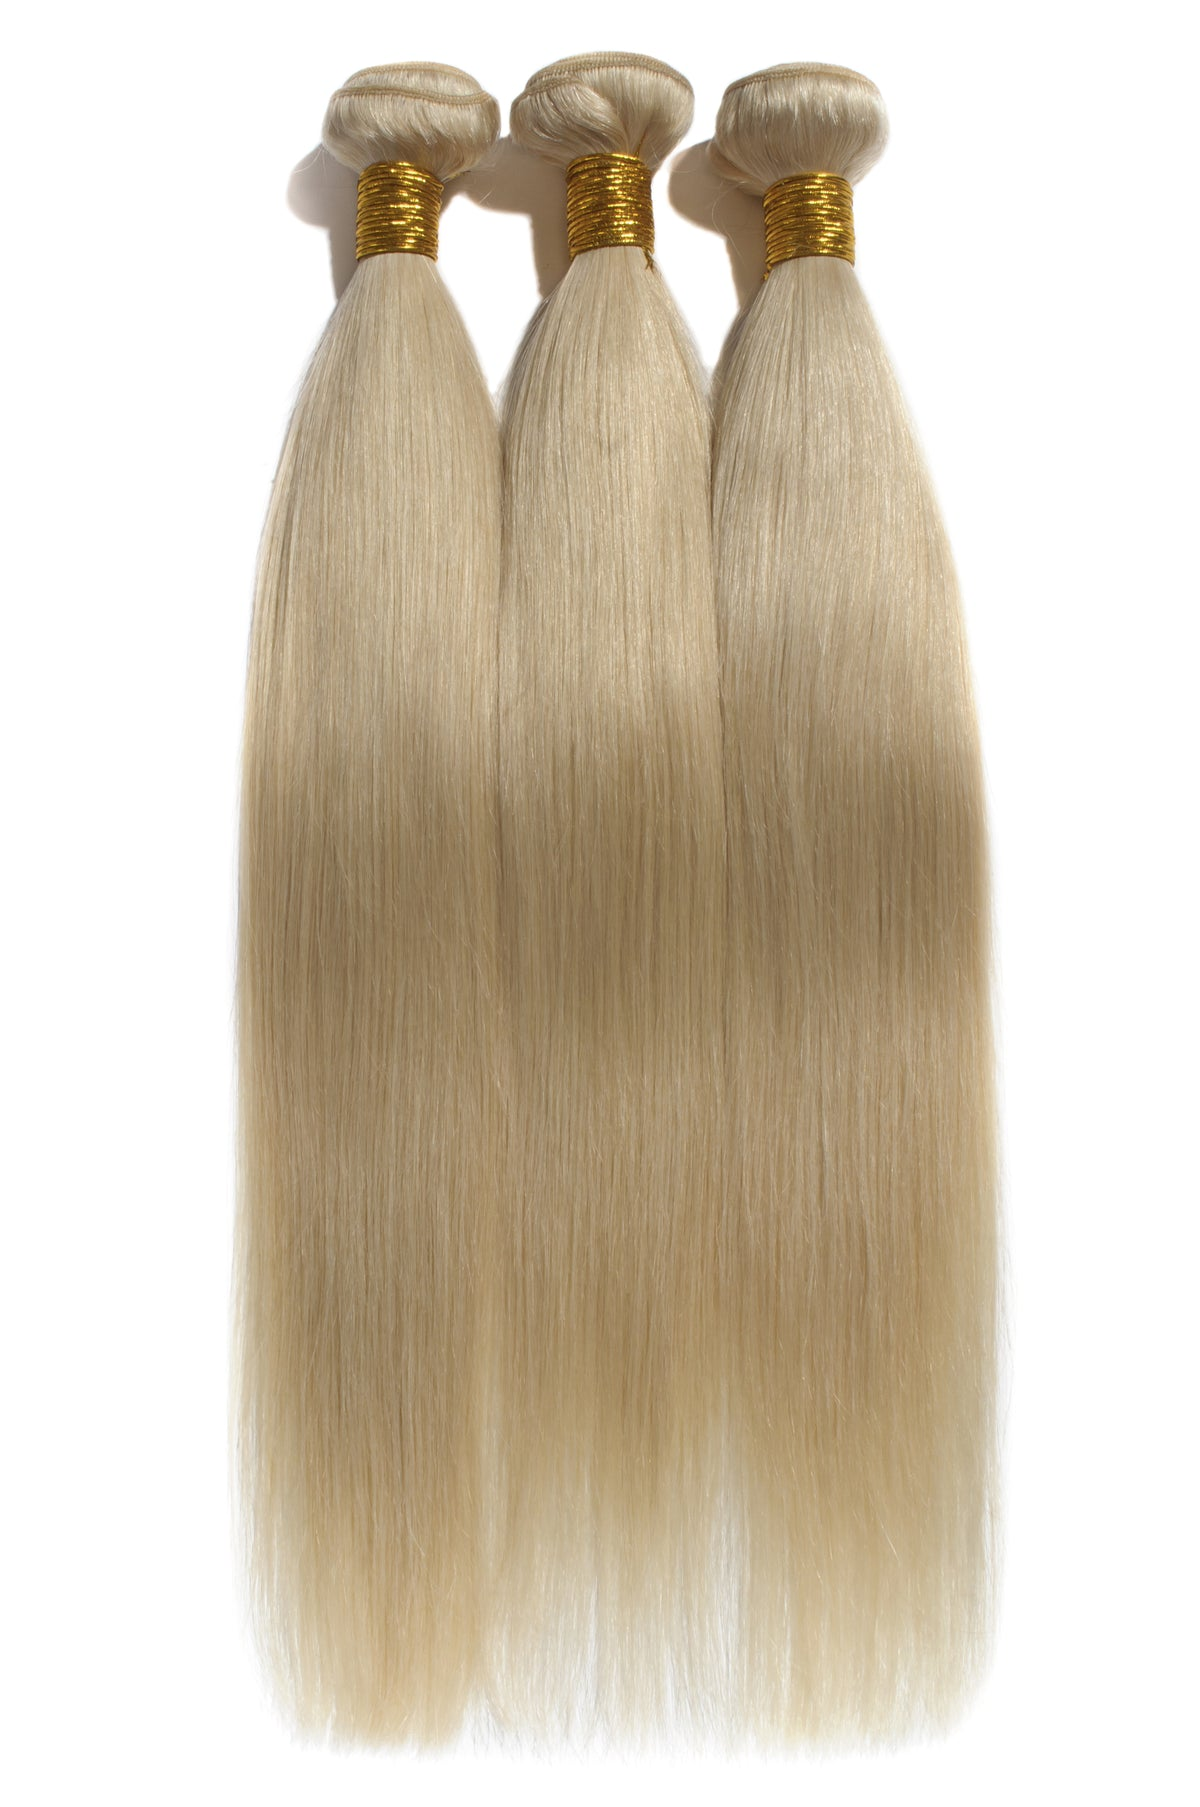 Brazilian Blond Straight